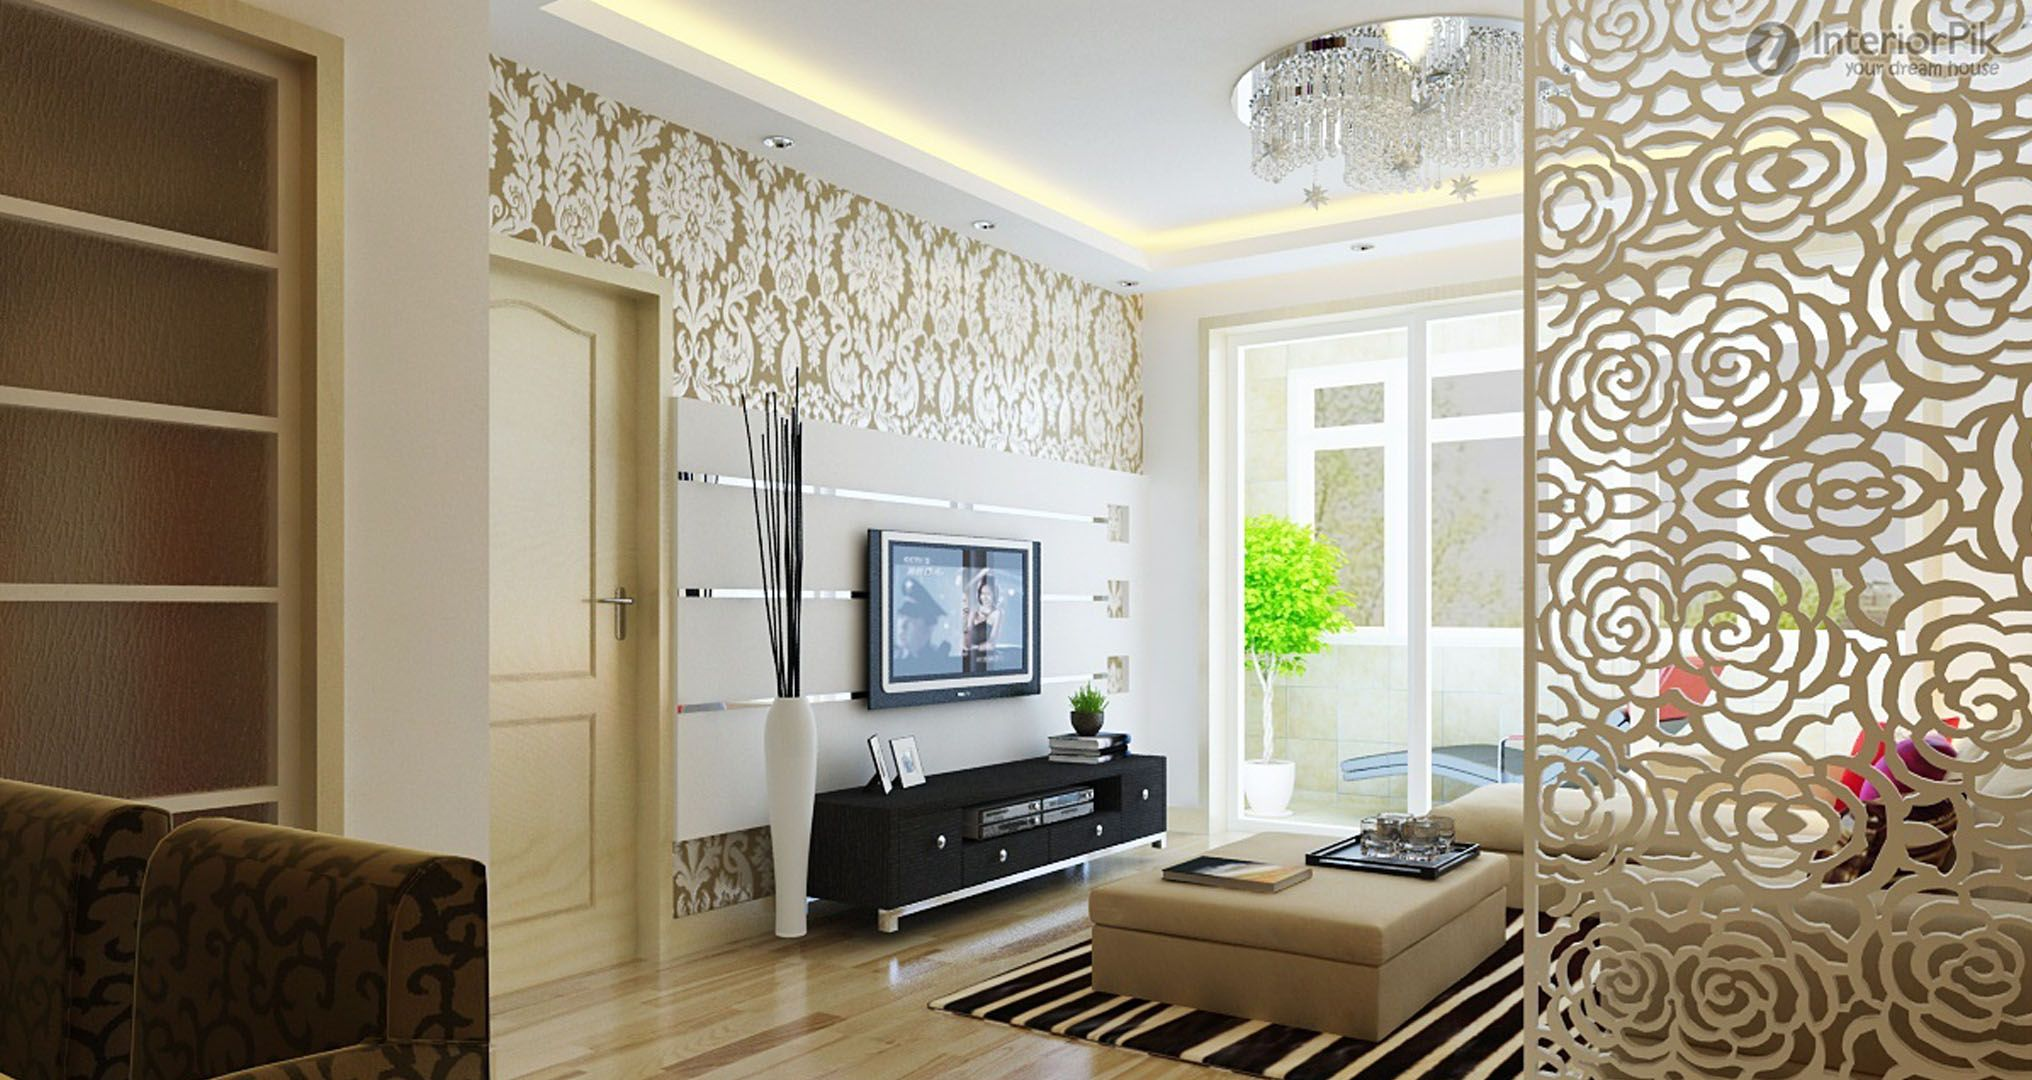 Charmant Image Result For Mdf Jali Partition Designs